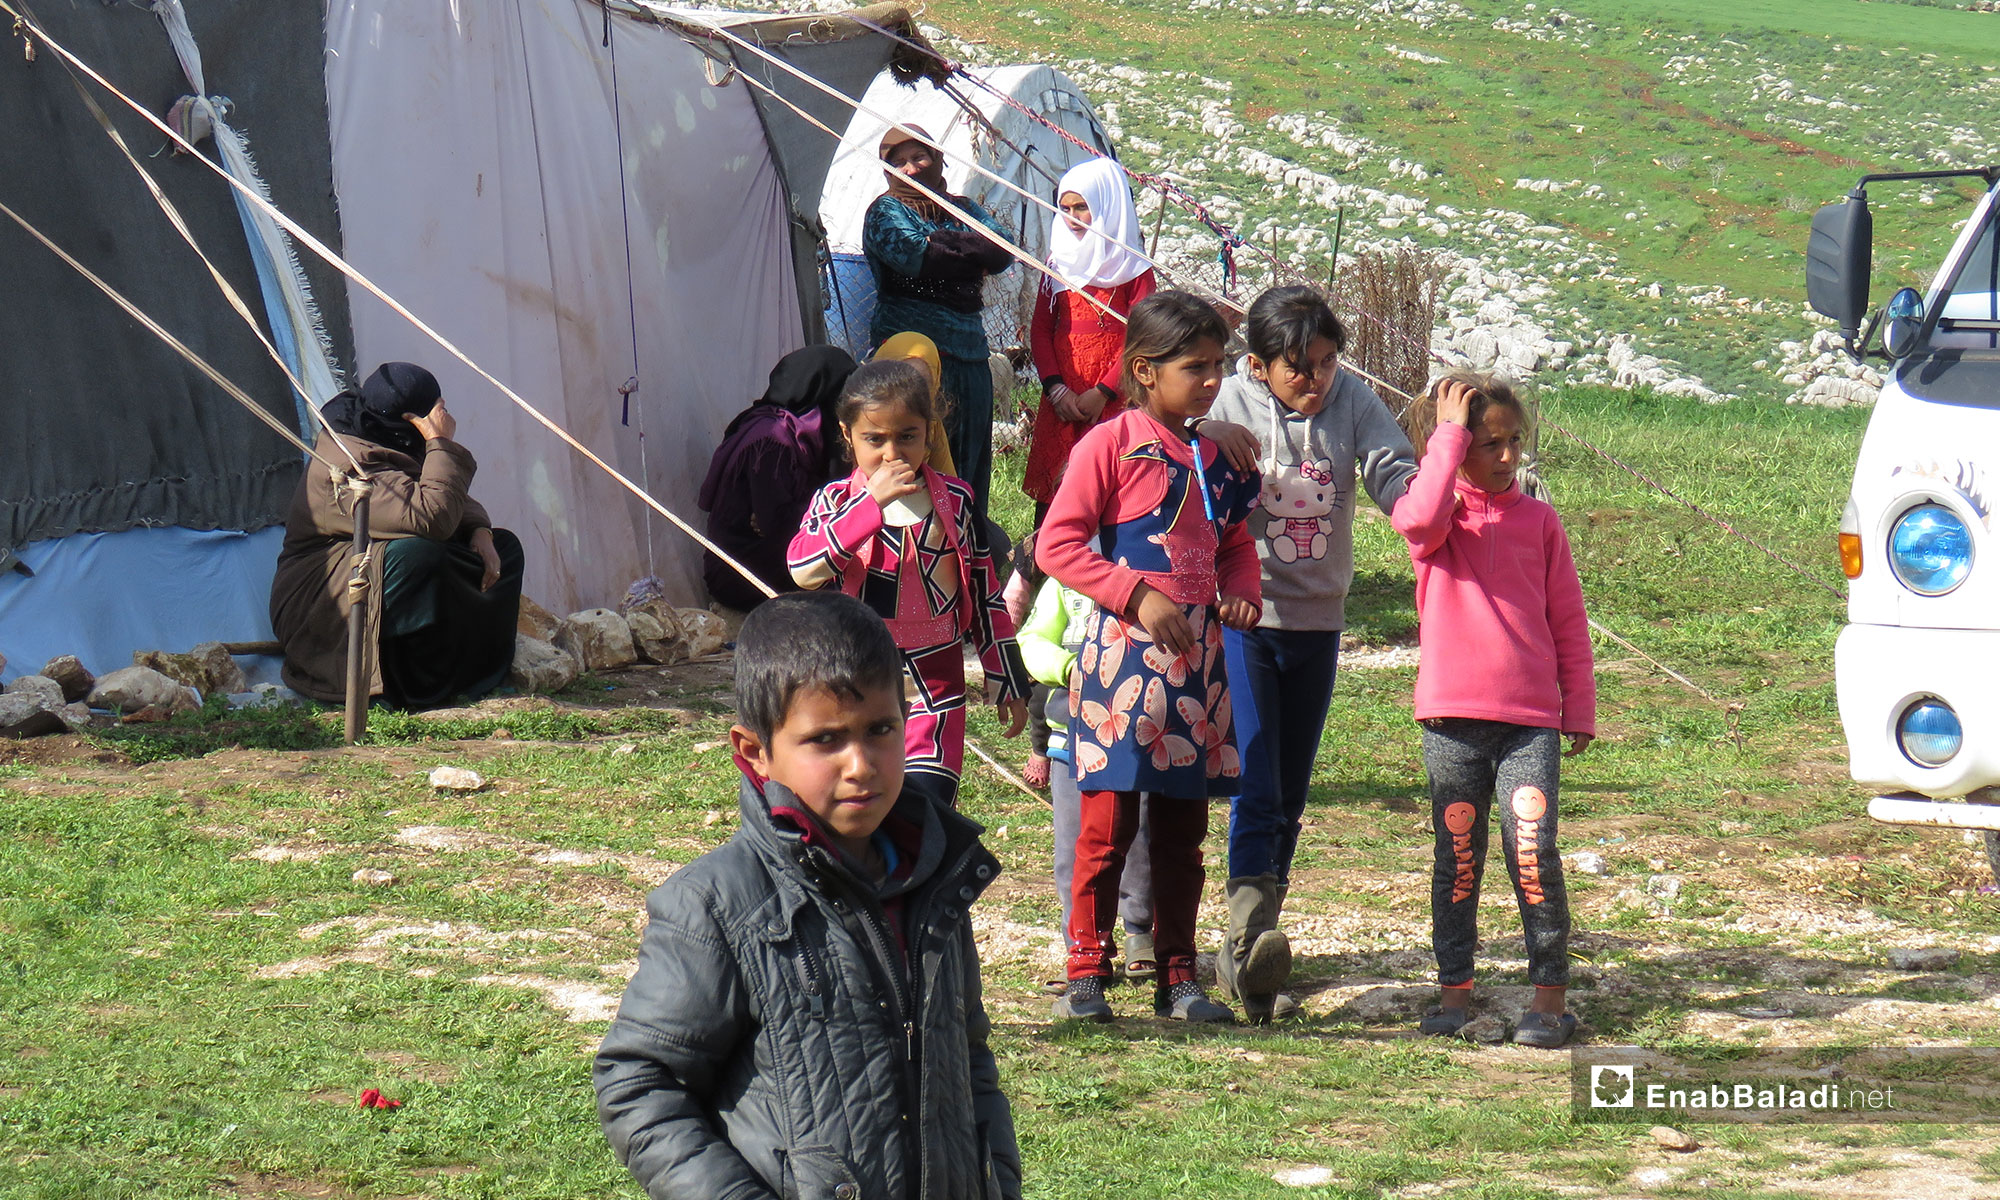 Children from the village of al-Huwayz being displaced to the area of Shair al-Maghar, under the protection of the Turkish observation point in al-Ghab Plain – Match 19, 2019 (Enab Baladi)